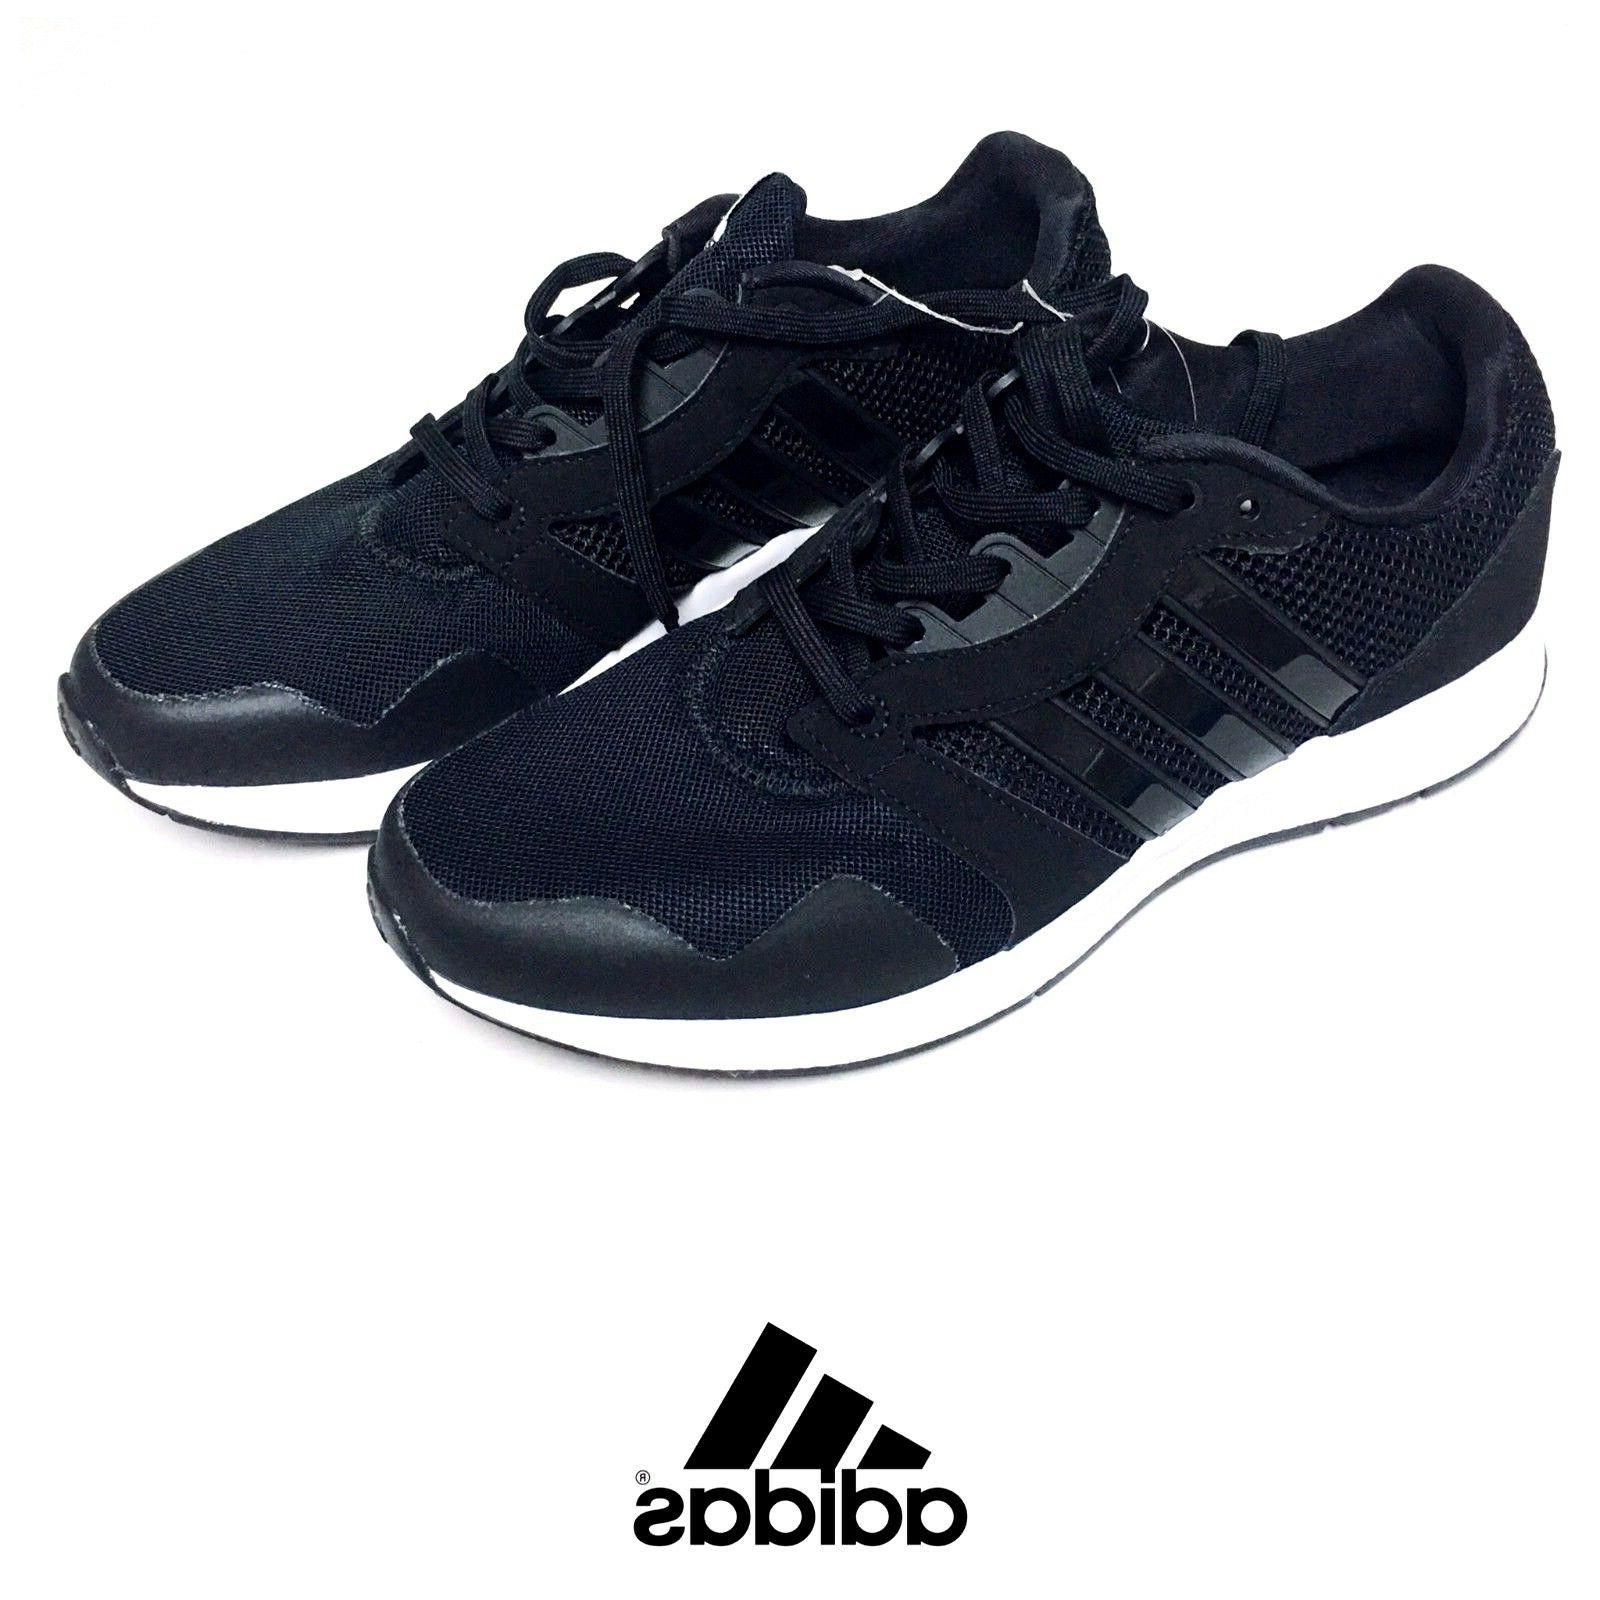 adidas Men's Equipment 16 M Running Shoes US 8.5 Black - Fre